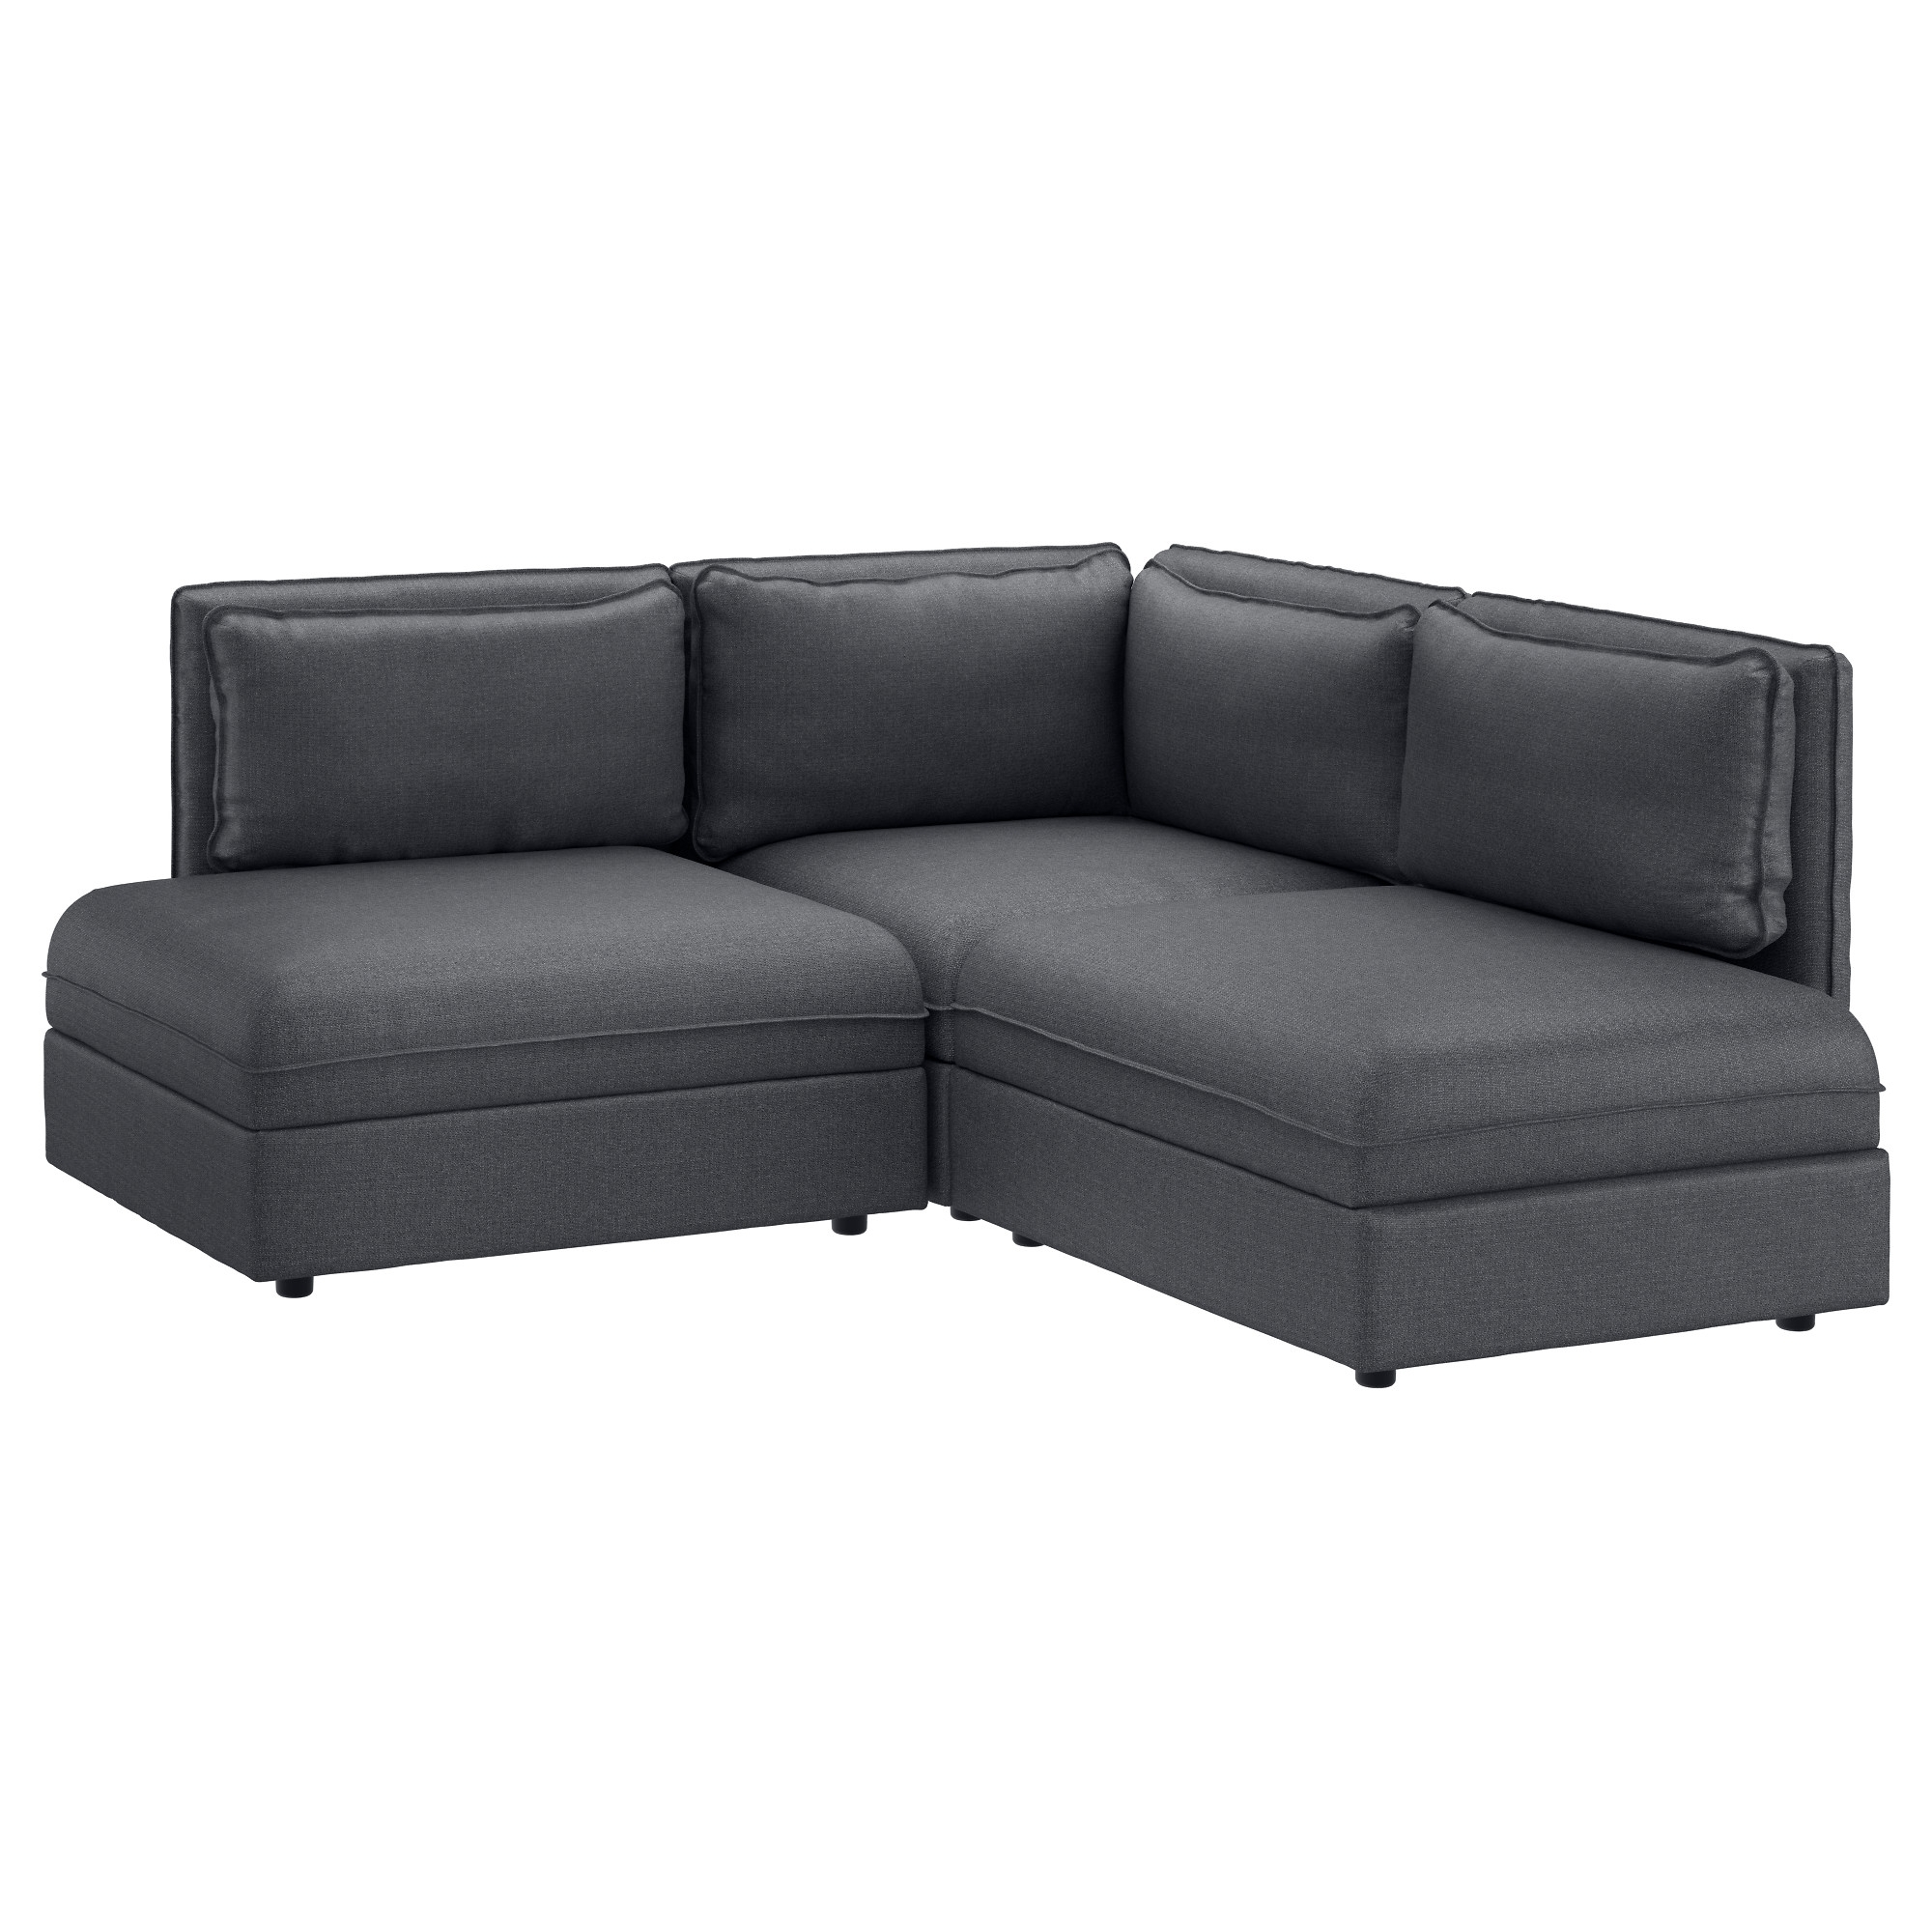 2 Seat Sectional Sofas Regarding Most Current Vallentuna Sectional, 2 Seat – Murum Beige – Ikea (View 4 of 20)